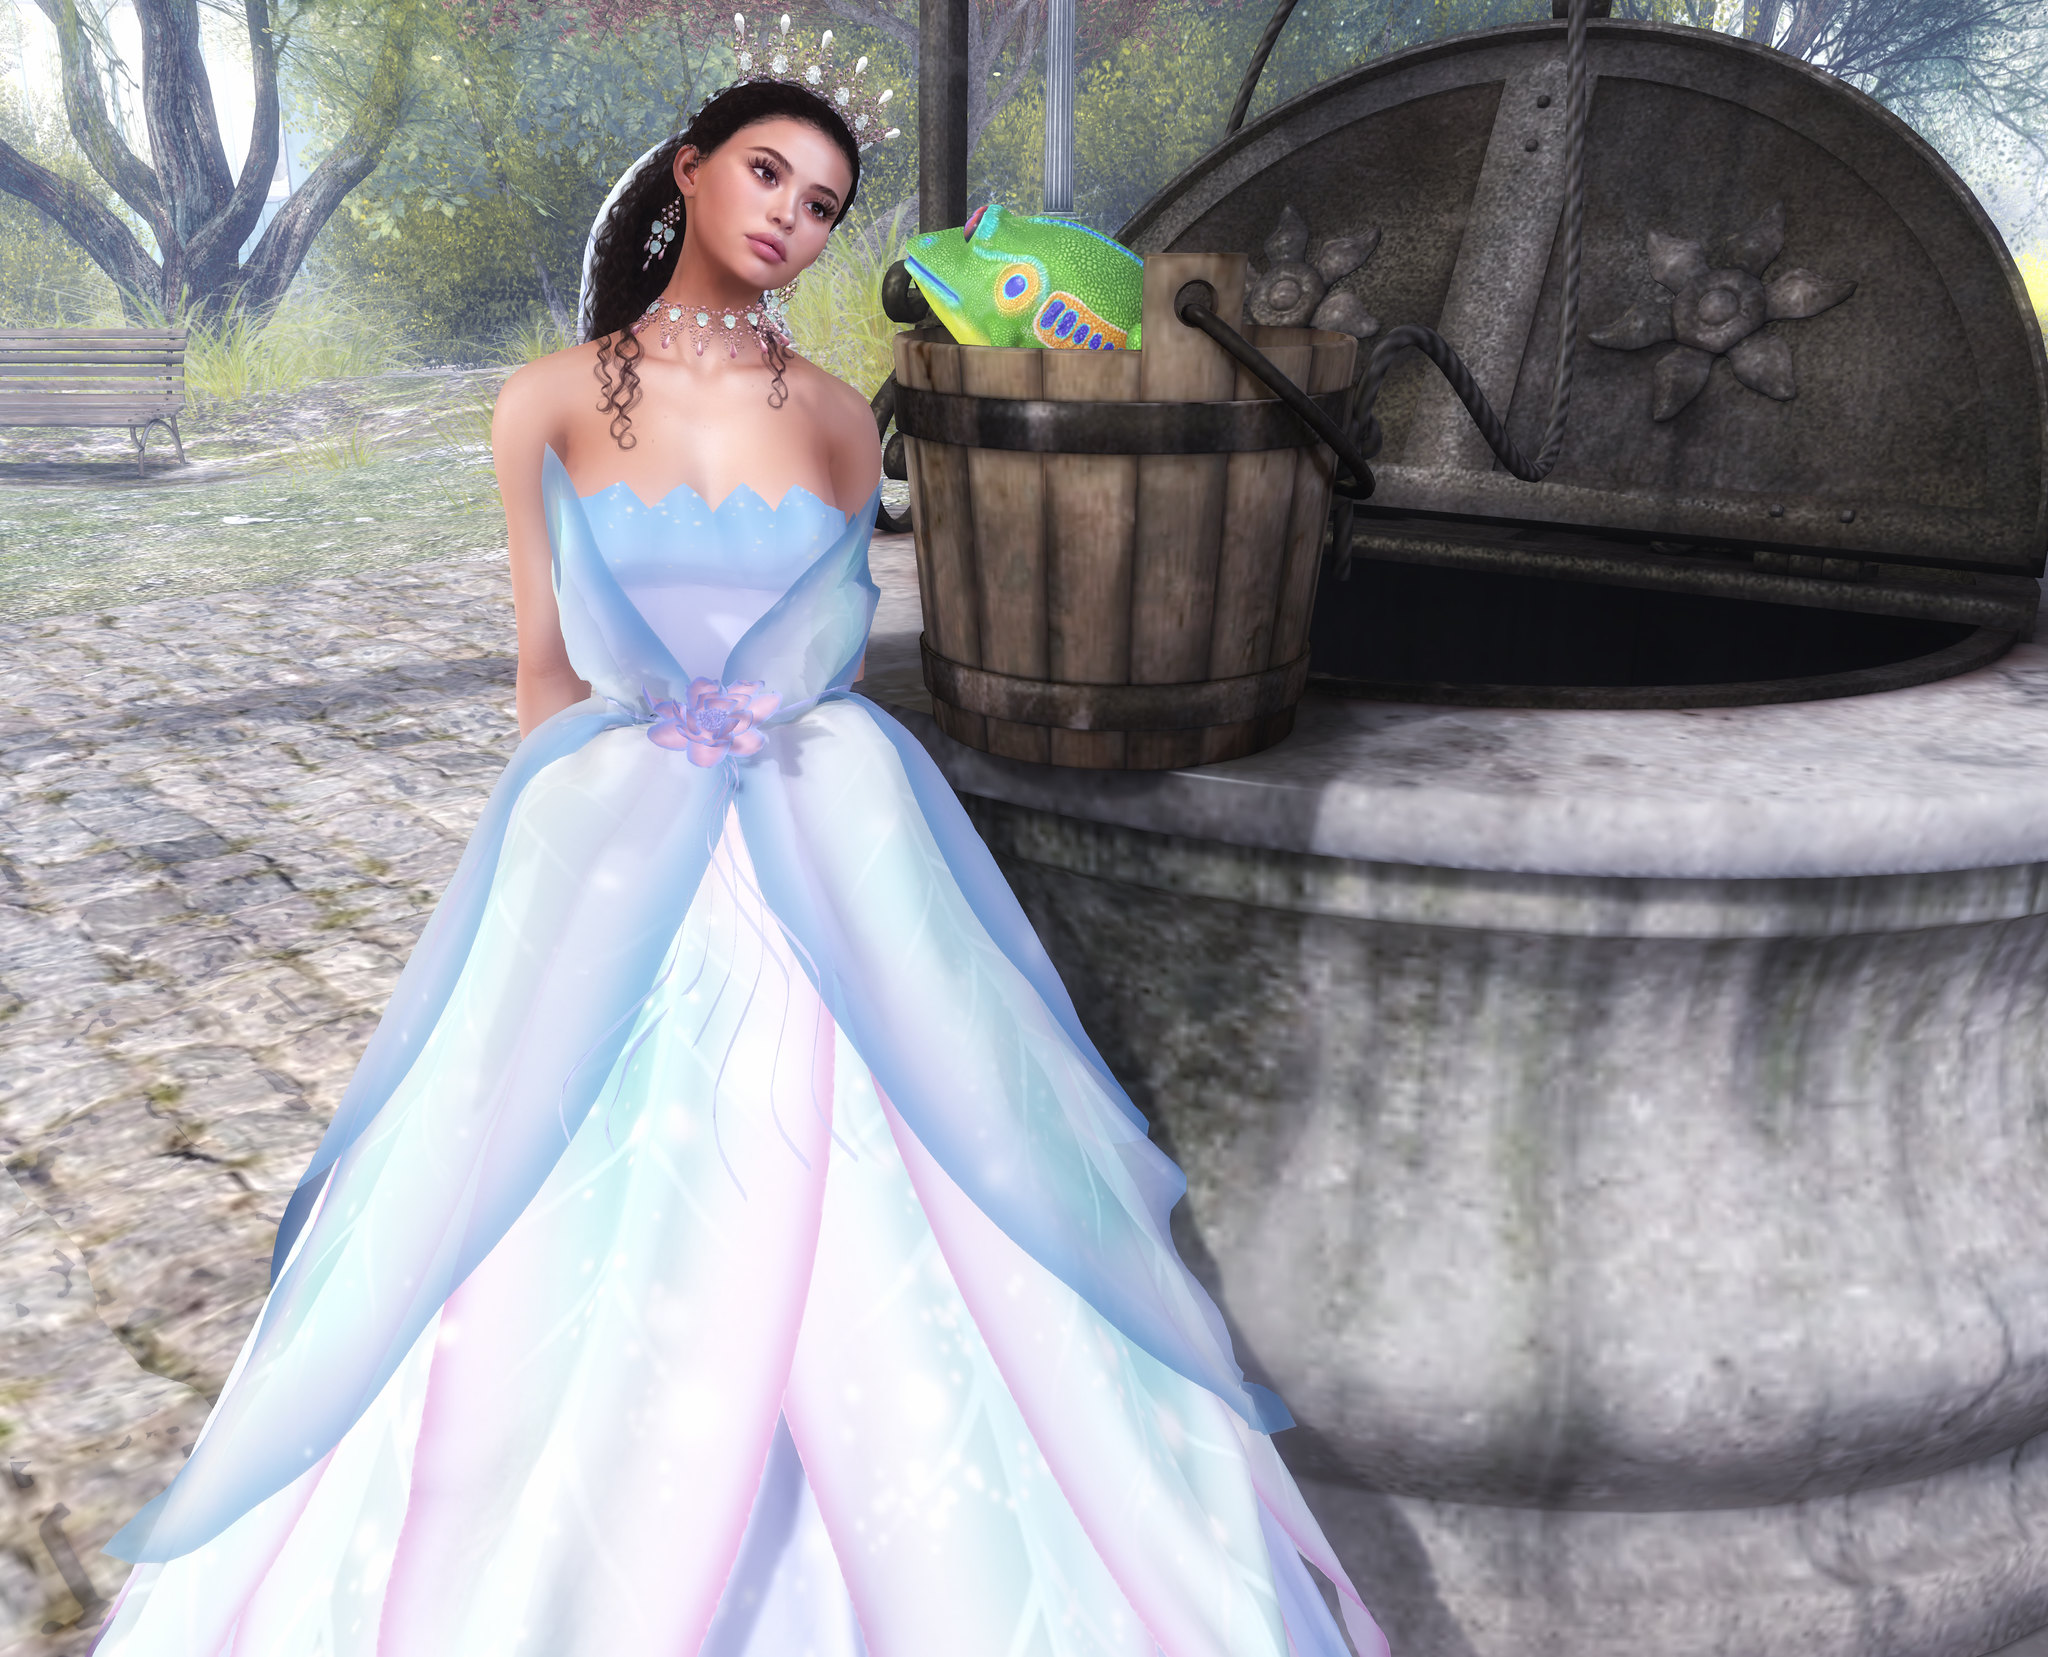 SMD Tiana gown @ Enchantment